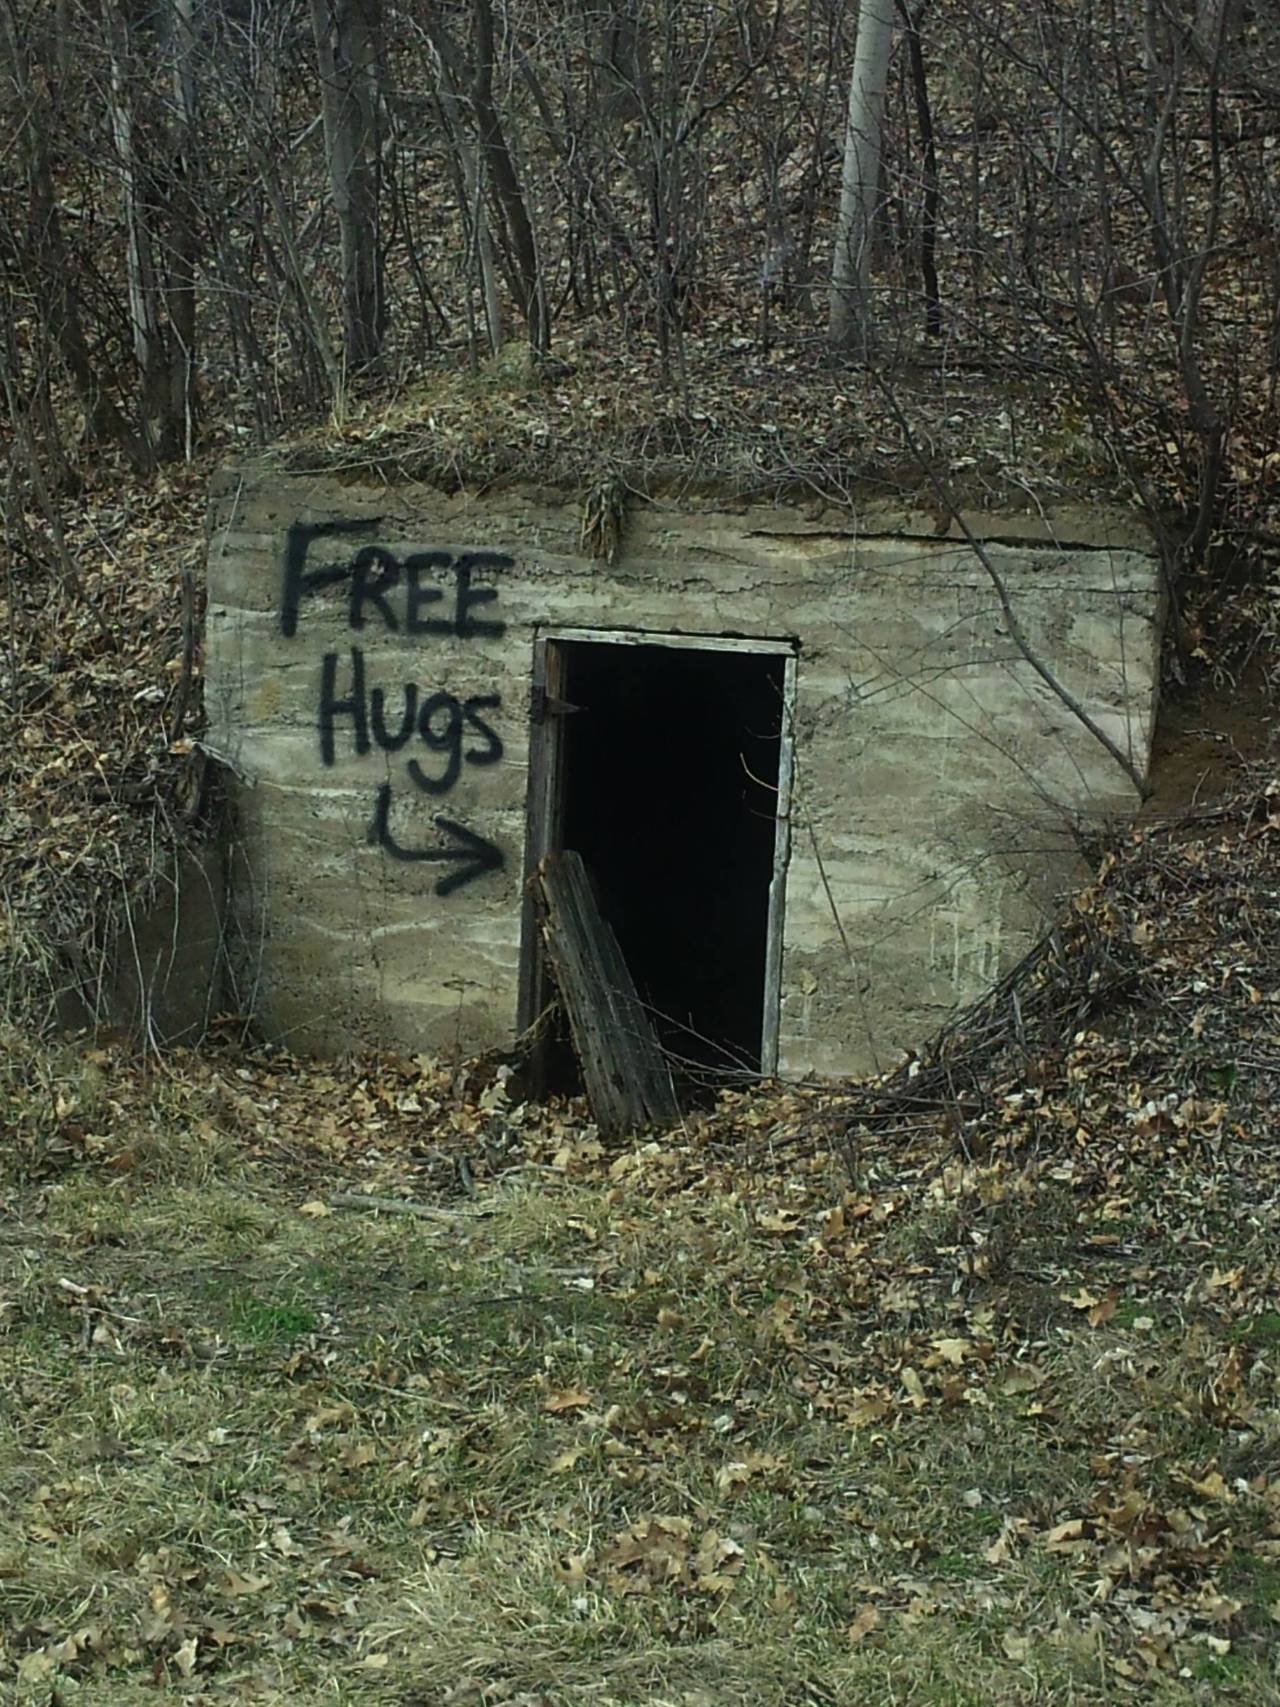 Would you go inside? Yes or No